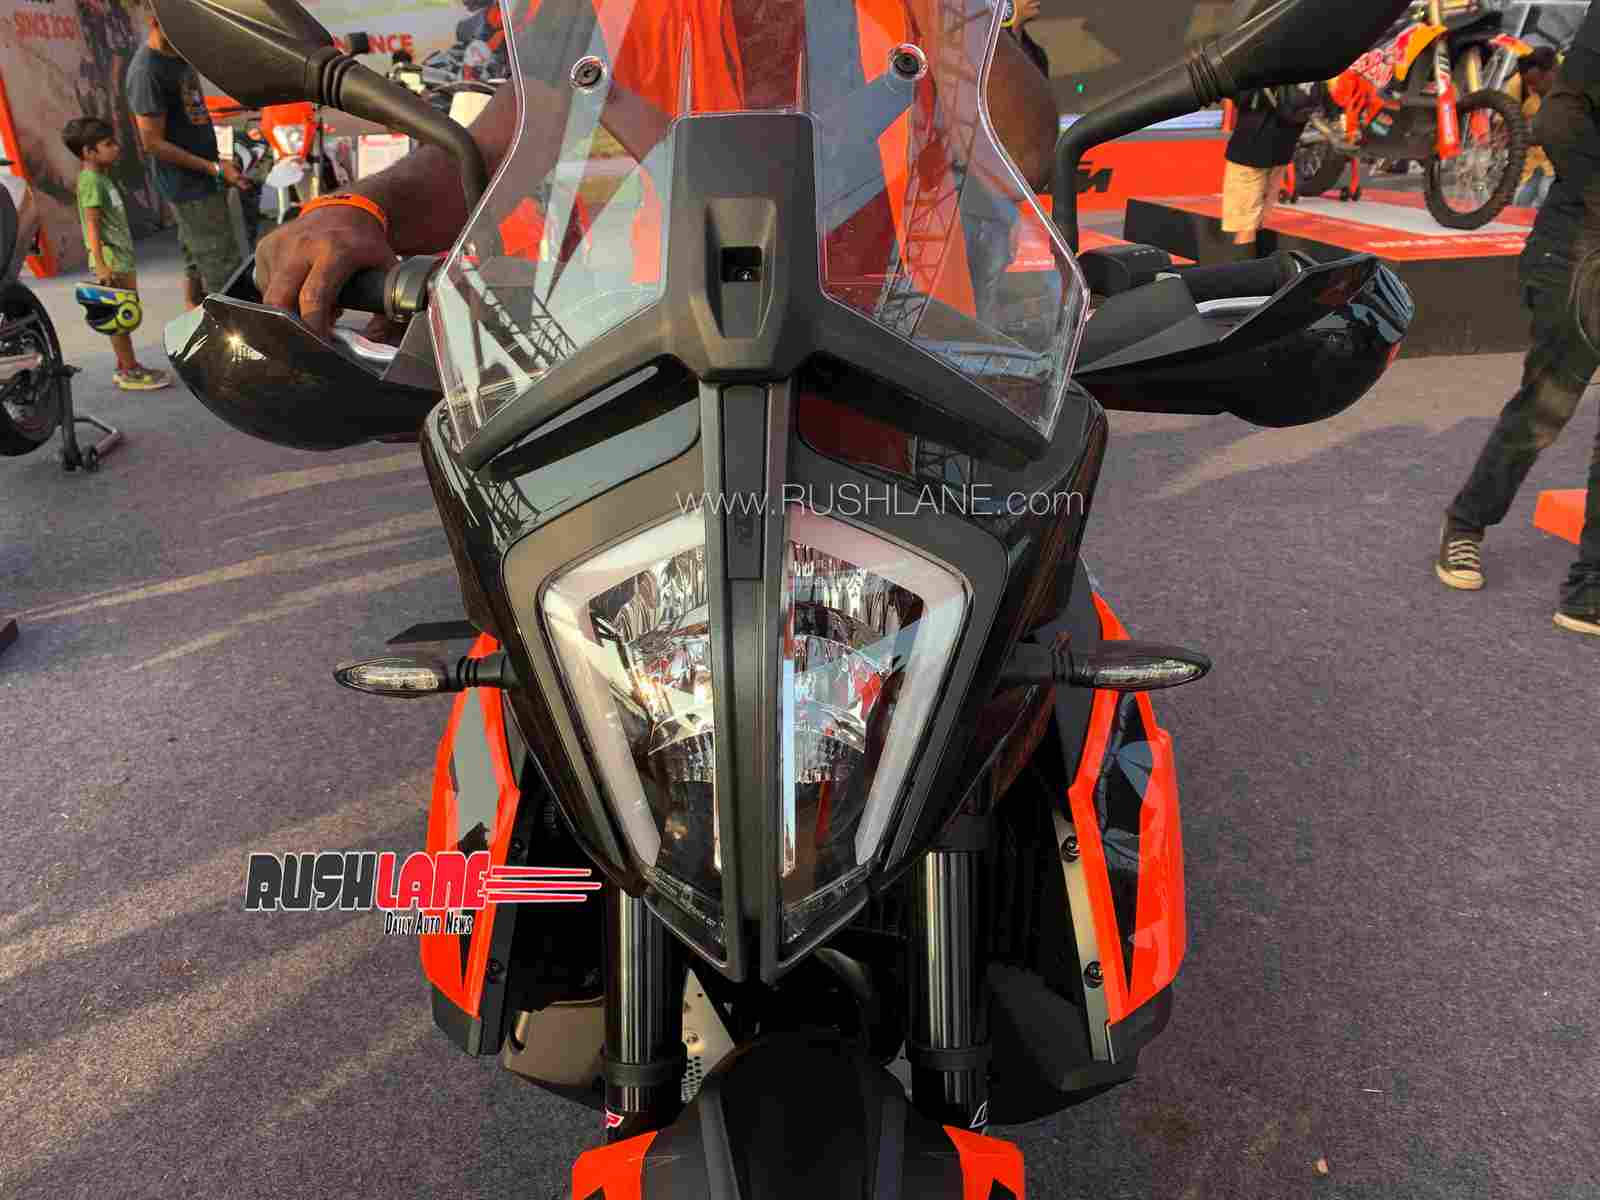 KTM India sales break up Nov 2019 - Grows by 45% - RushLane thumbnail